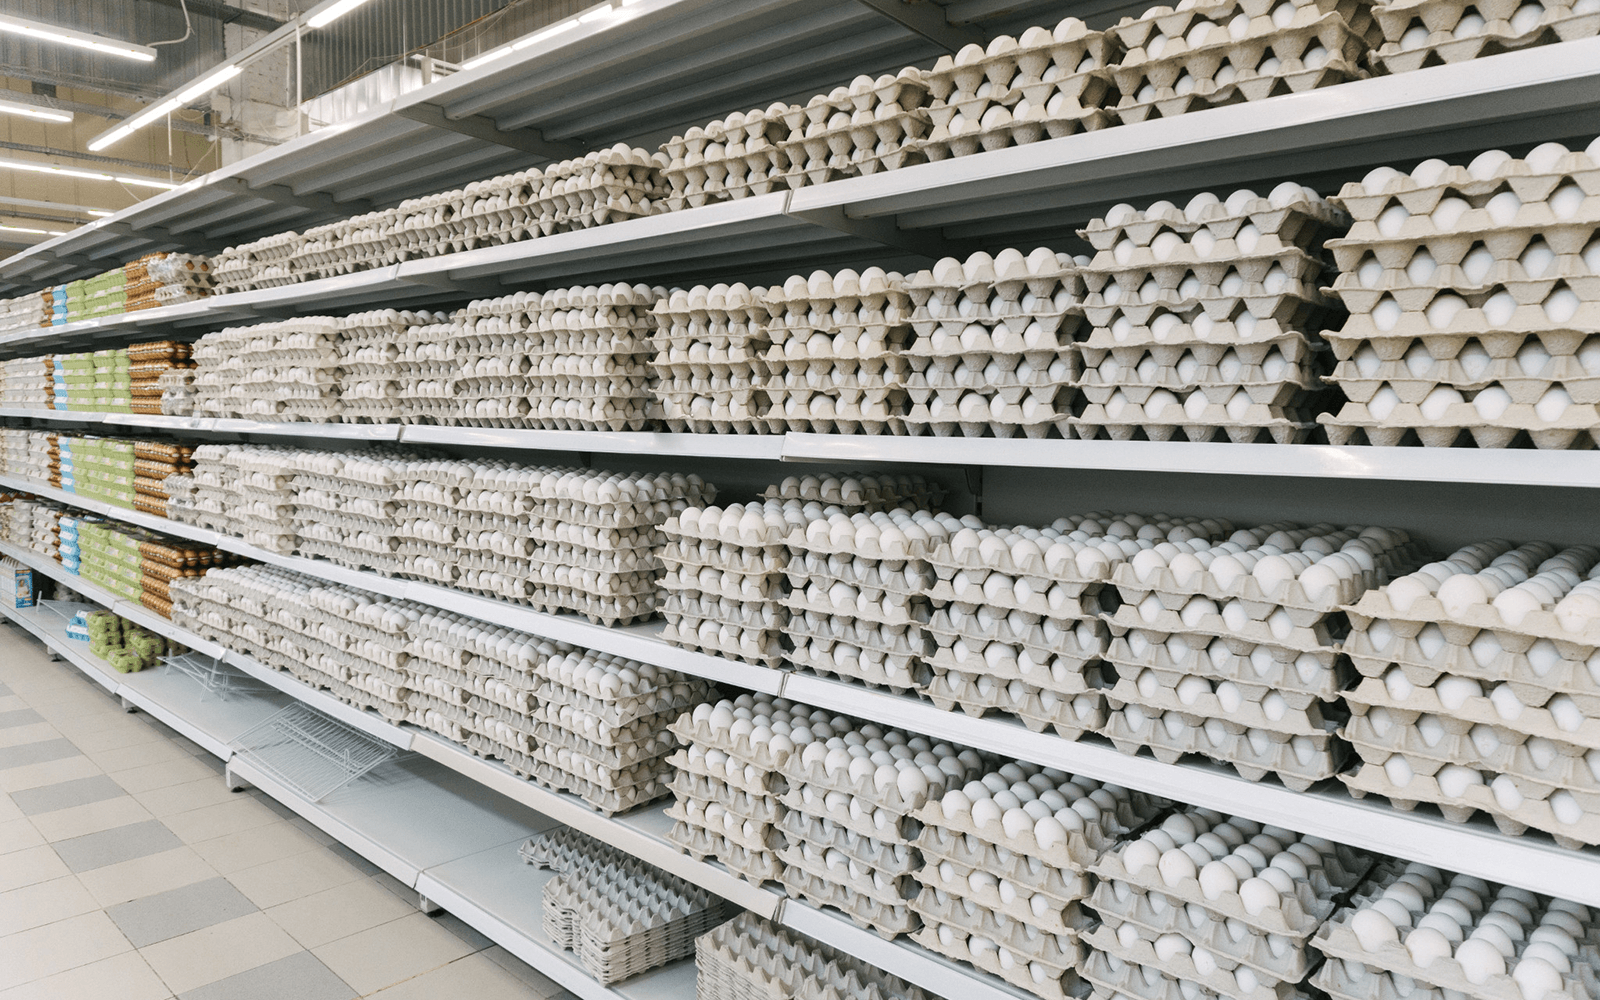 A long row five shelves high of unrefrigerated eggs in an overseas grocery store.